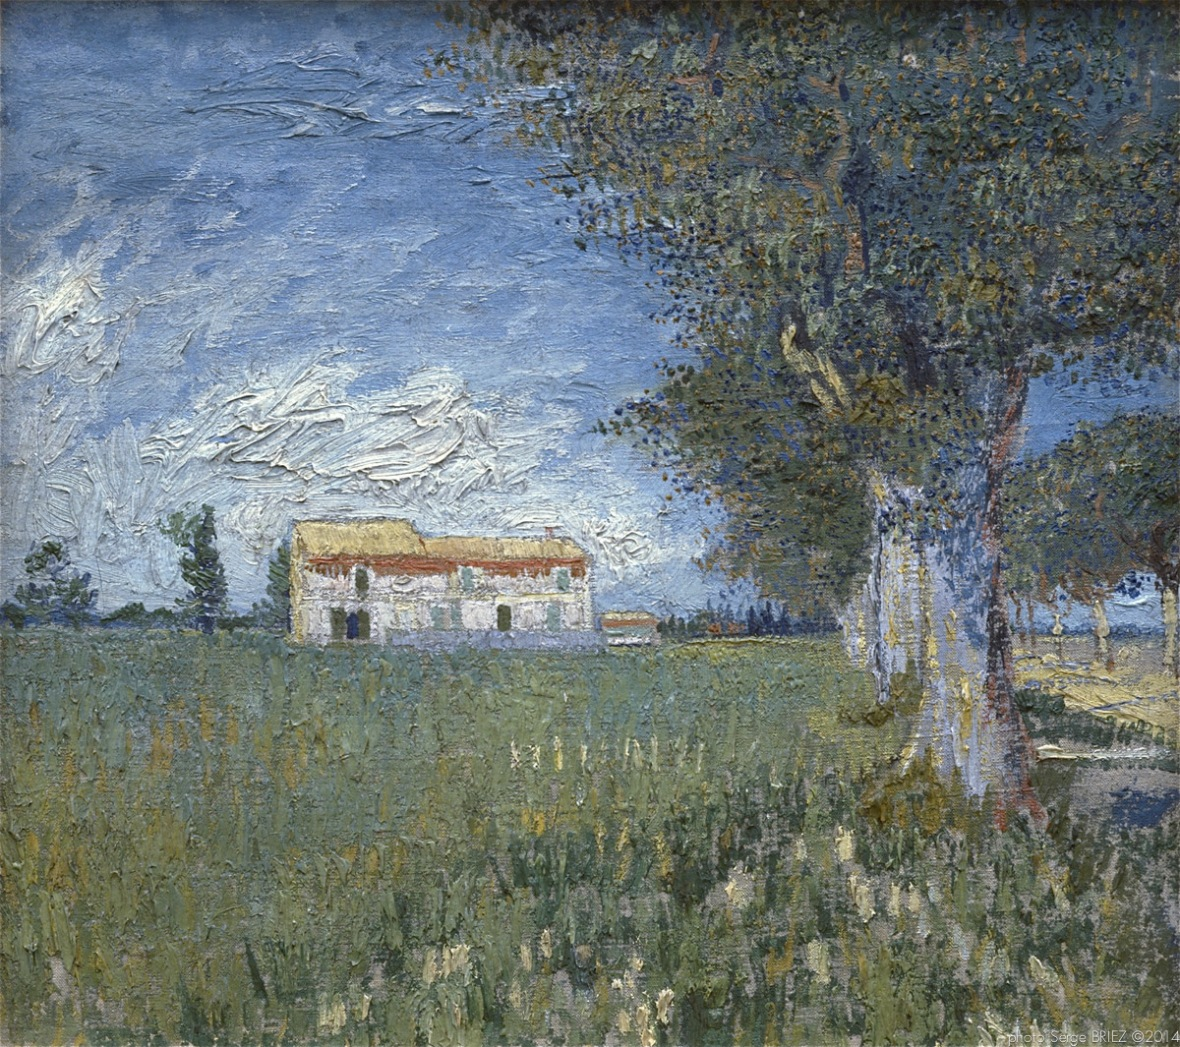 Farmhouse in a Wheat Field, Ferme dans les champs de blé, May 1888, Van gogh's painting photographed by Serge Briez, ©2014 Cap médiations